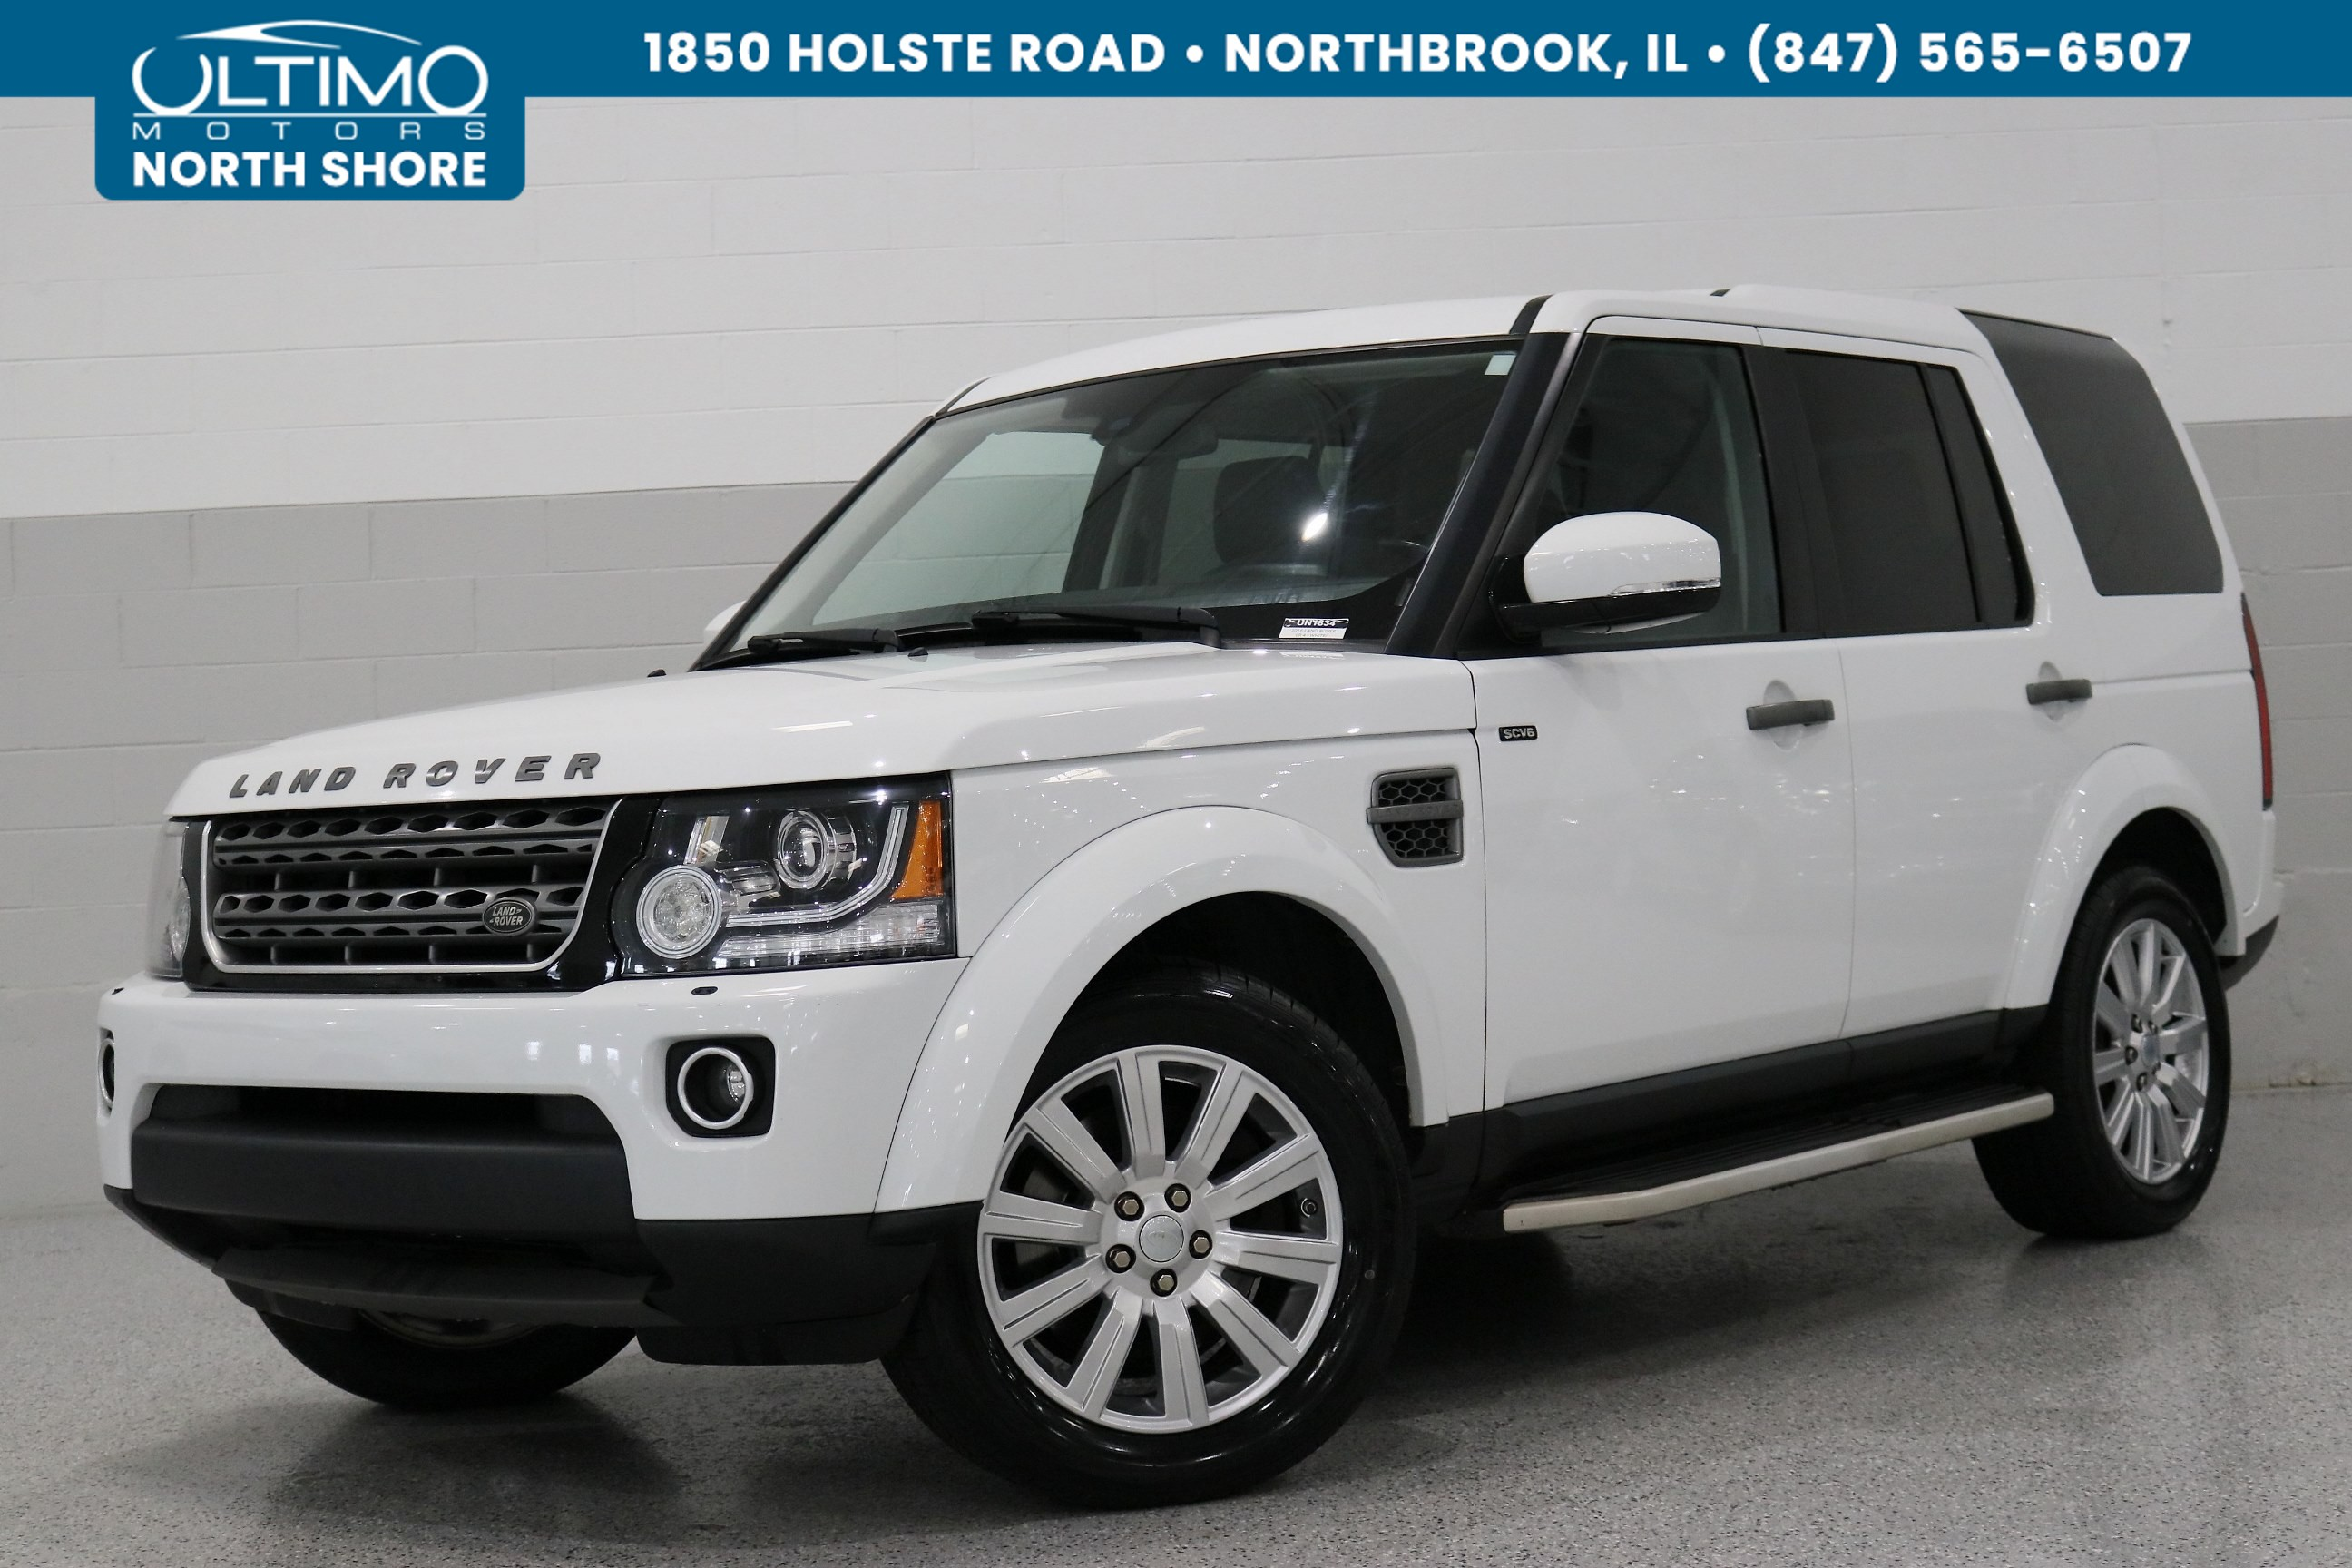 Pre-Owned 2016 Land Rover LR4 Base Northbrook, IL